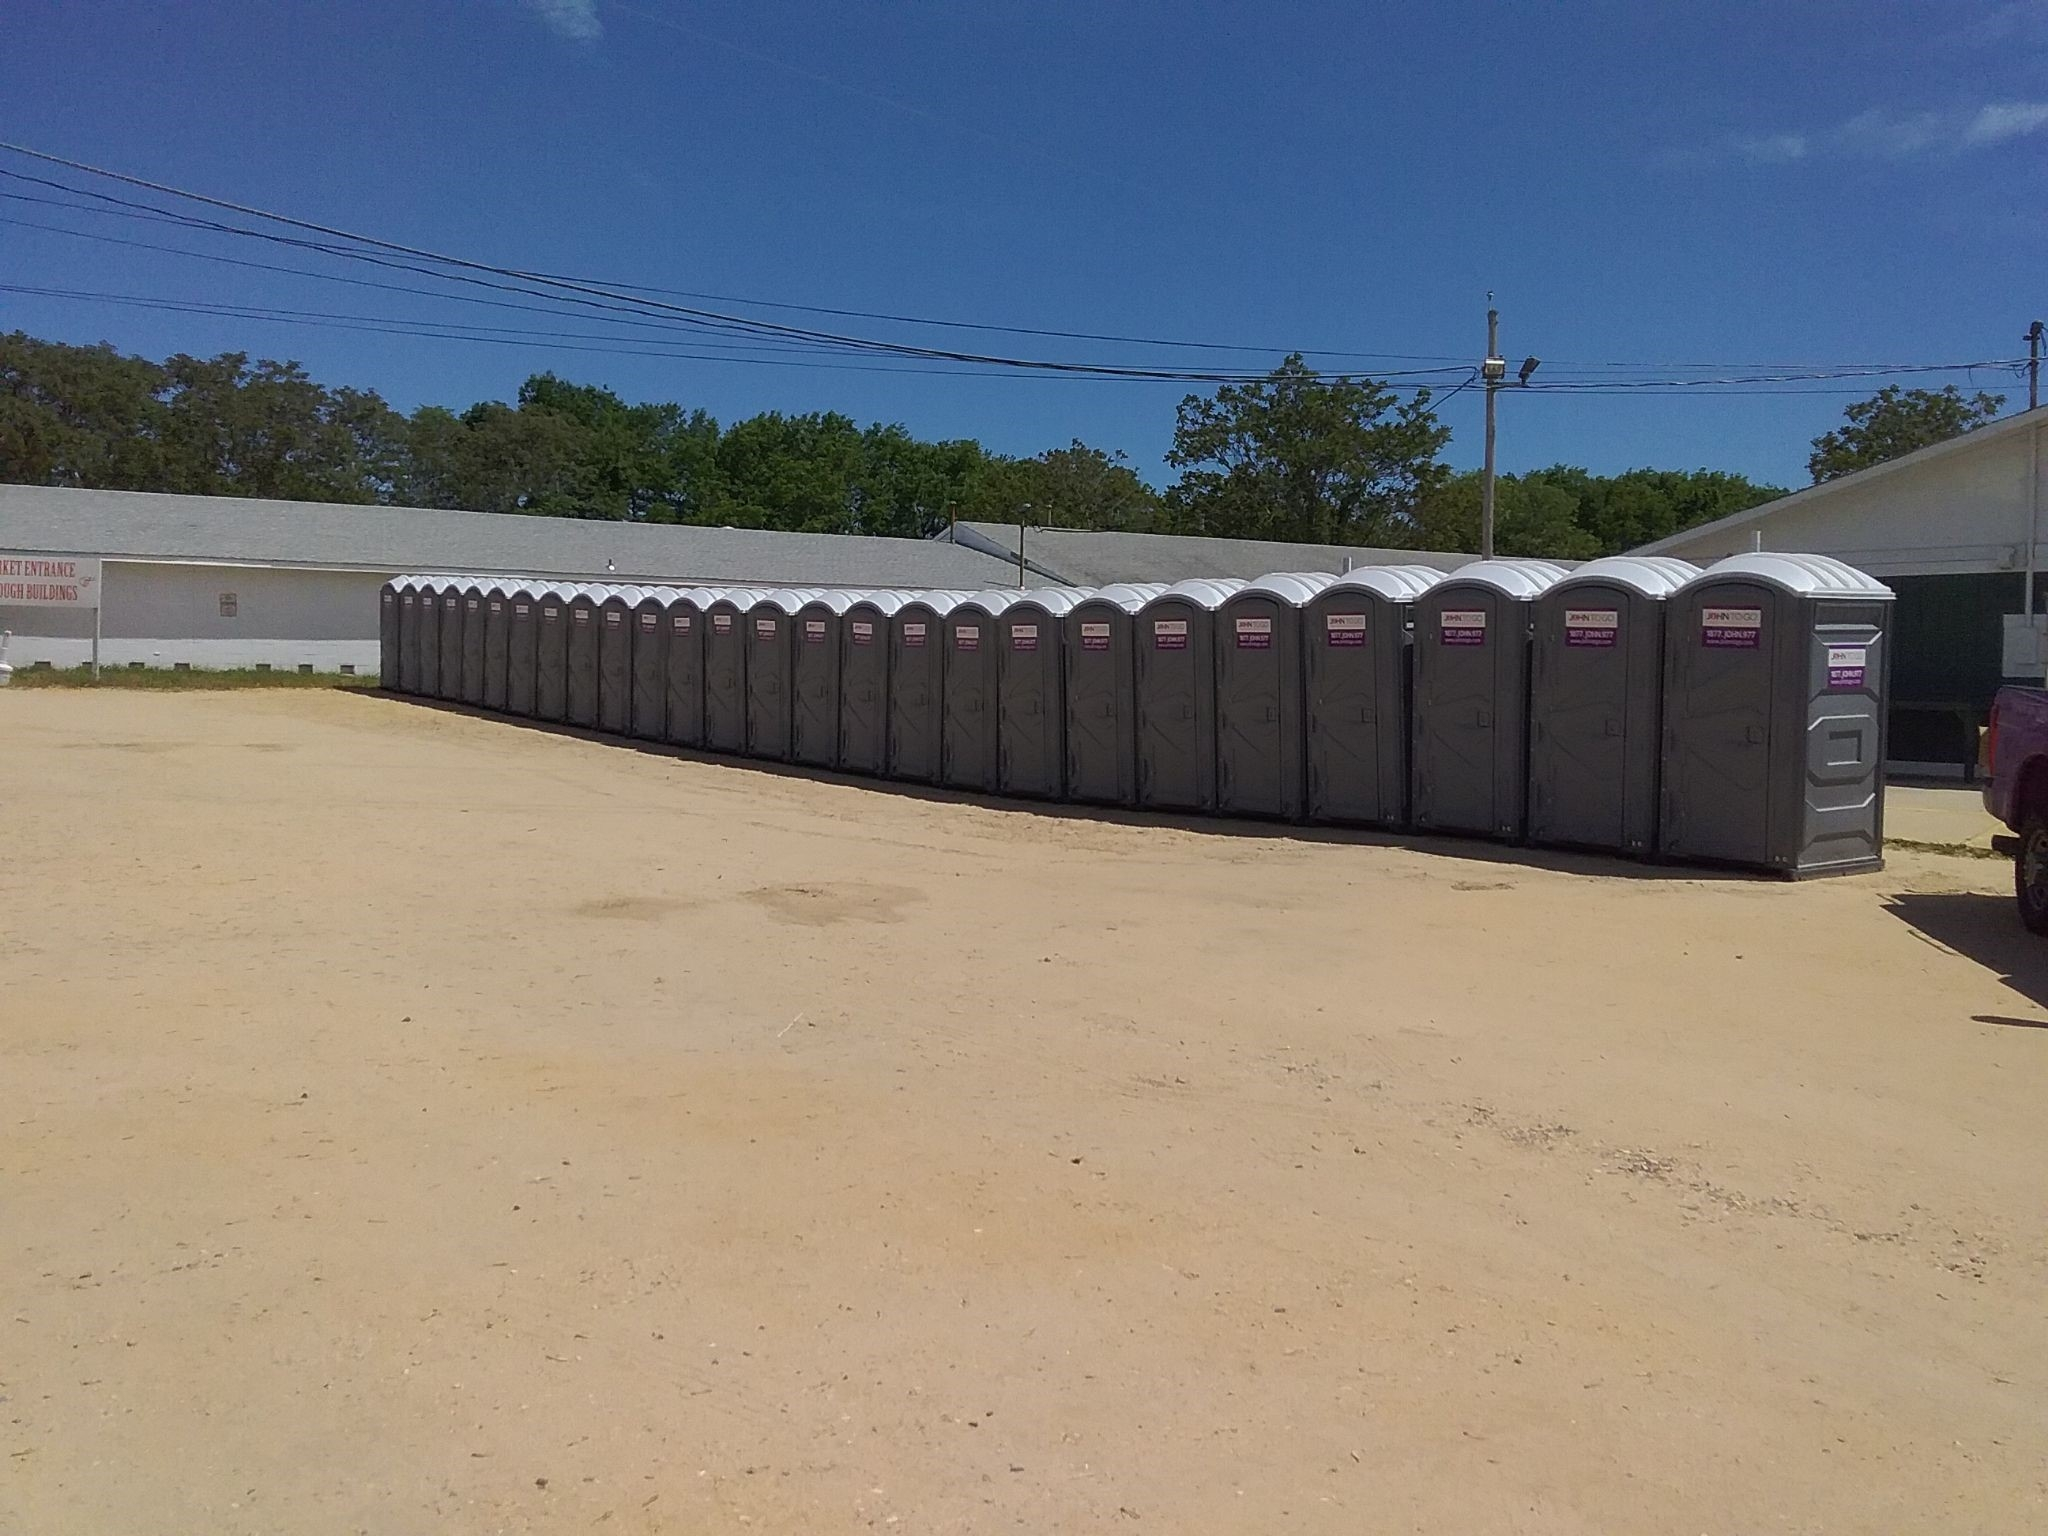 Portable toilets at Auction in Monmouth County NJ